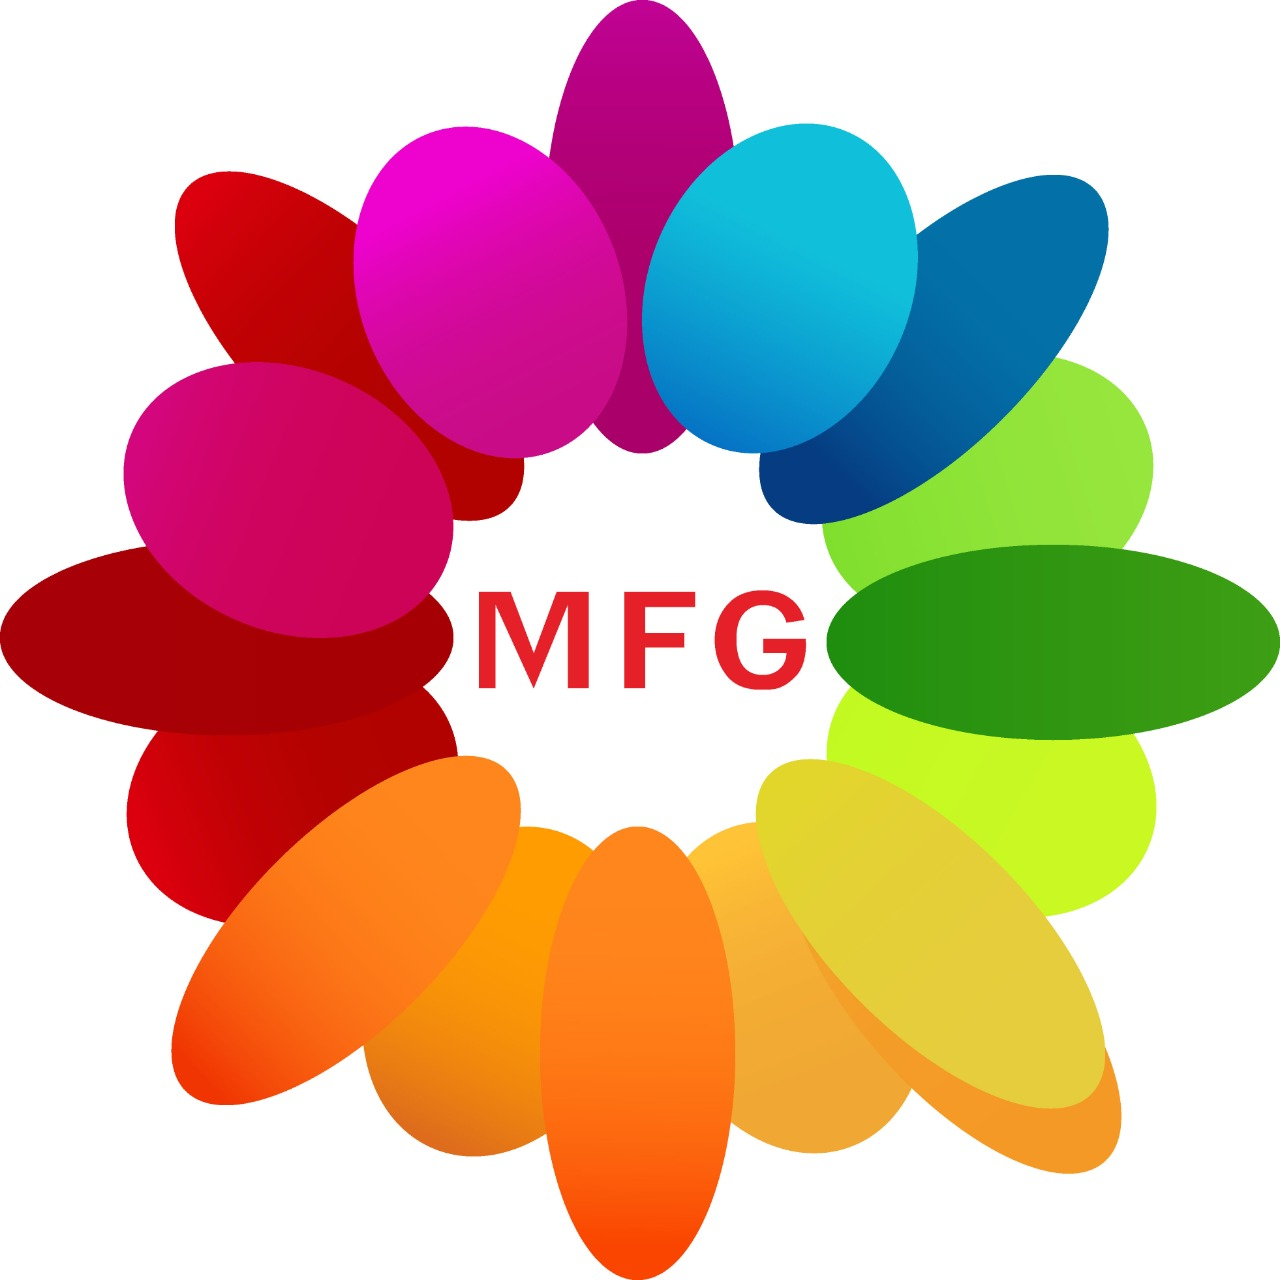 20 Red Roses Bunch with 6 inch Teddy,16pcs Ferrero rocher Chocolates,5pcs 5star